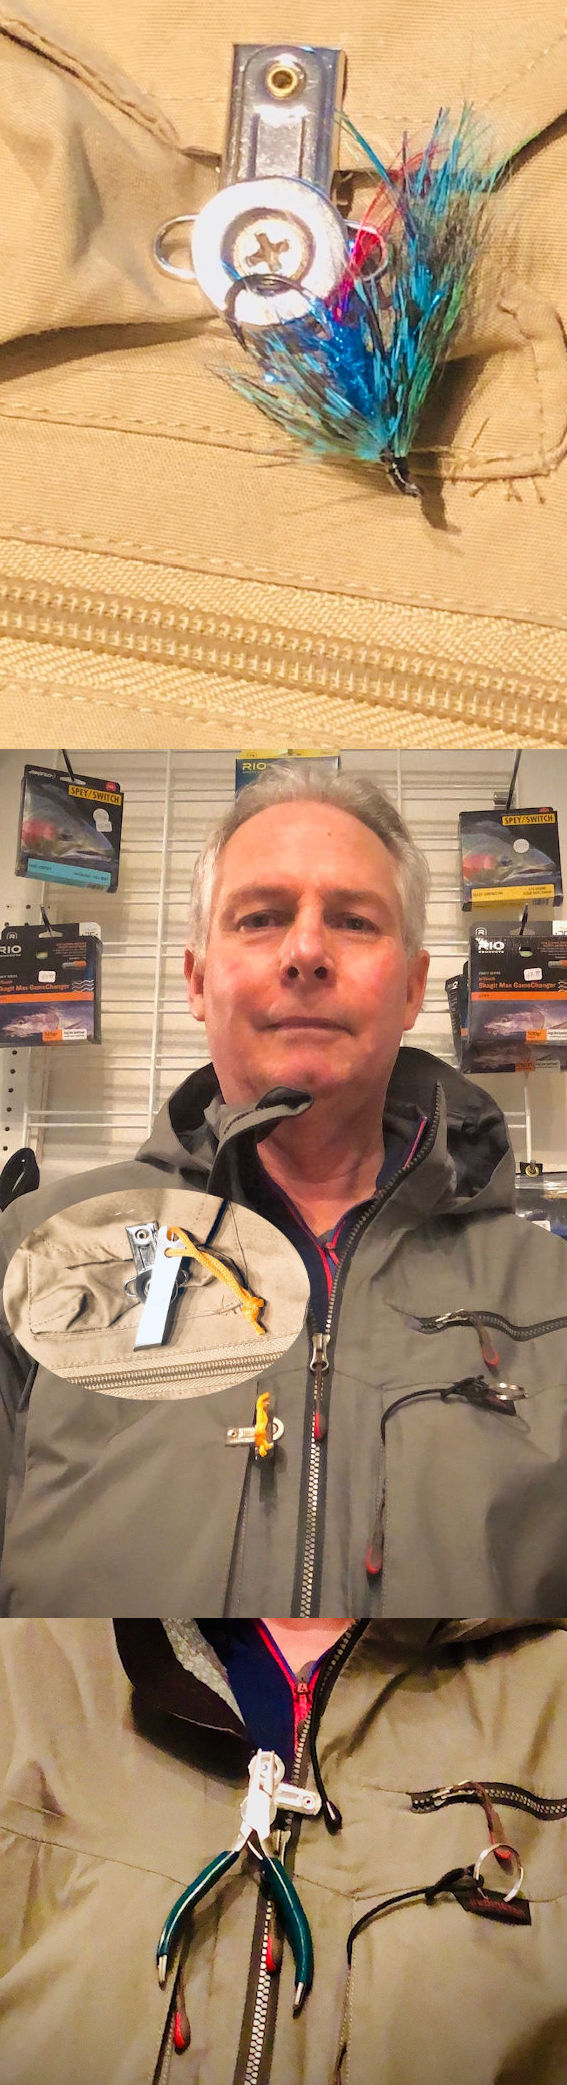 Examples of magnetic clip on fishing jacket or vest.